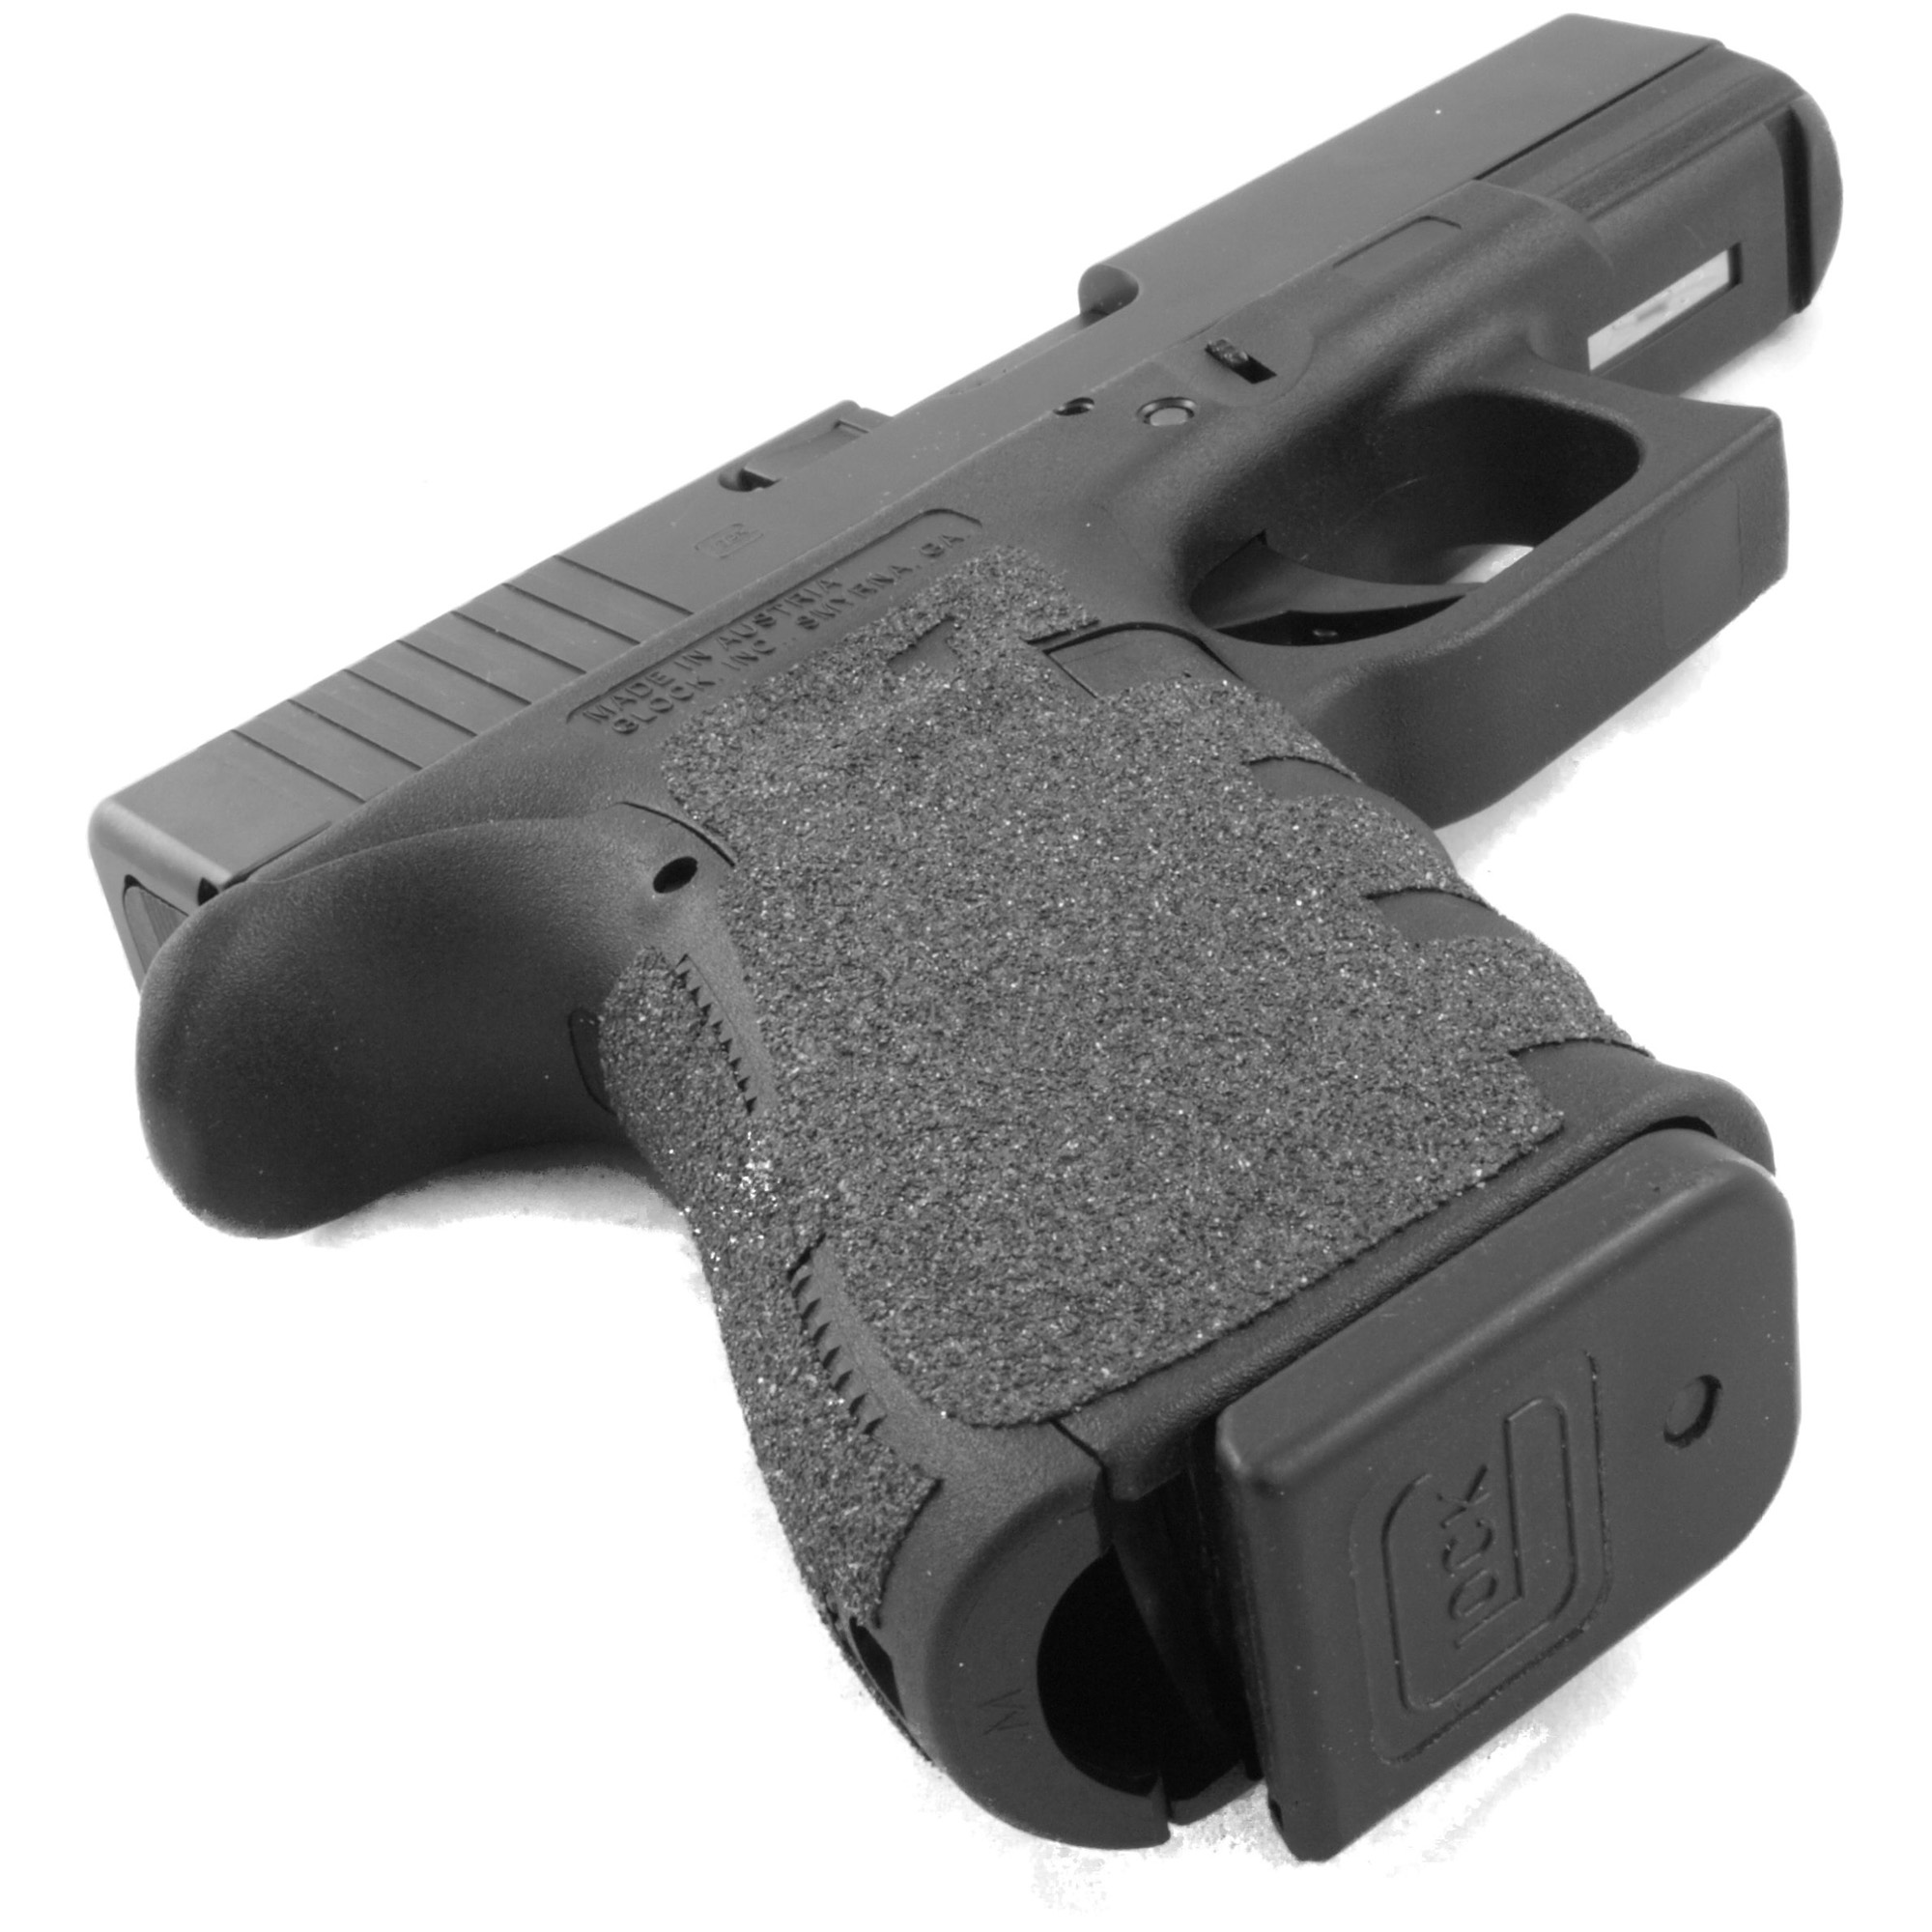 """TALON Grips for Glock Model 19"""" 23"""" 25"""" 32"""" and 38 models Gen 1"""" 2"""" 3. This rear wrap grip is in the granulate texture. This grip provides full coverage on the side panels including above the thumb rest"""" ample coverage on the backstrap"""" and three finger wraps for the finger groves under the trigger guard. This grip has a logo cutout for the Glock emblem on the left side of the handle. This grip sticks extremely well even with the Rough Textured Frame (RTF)."""